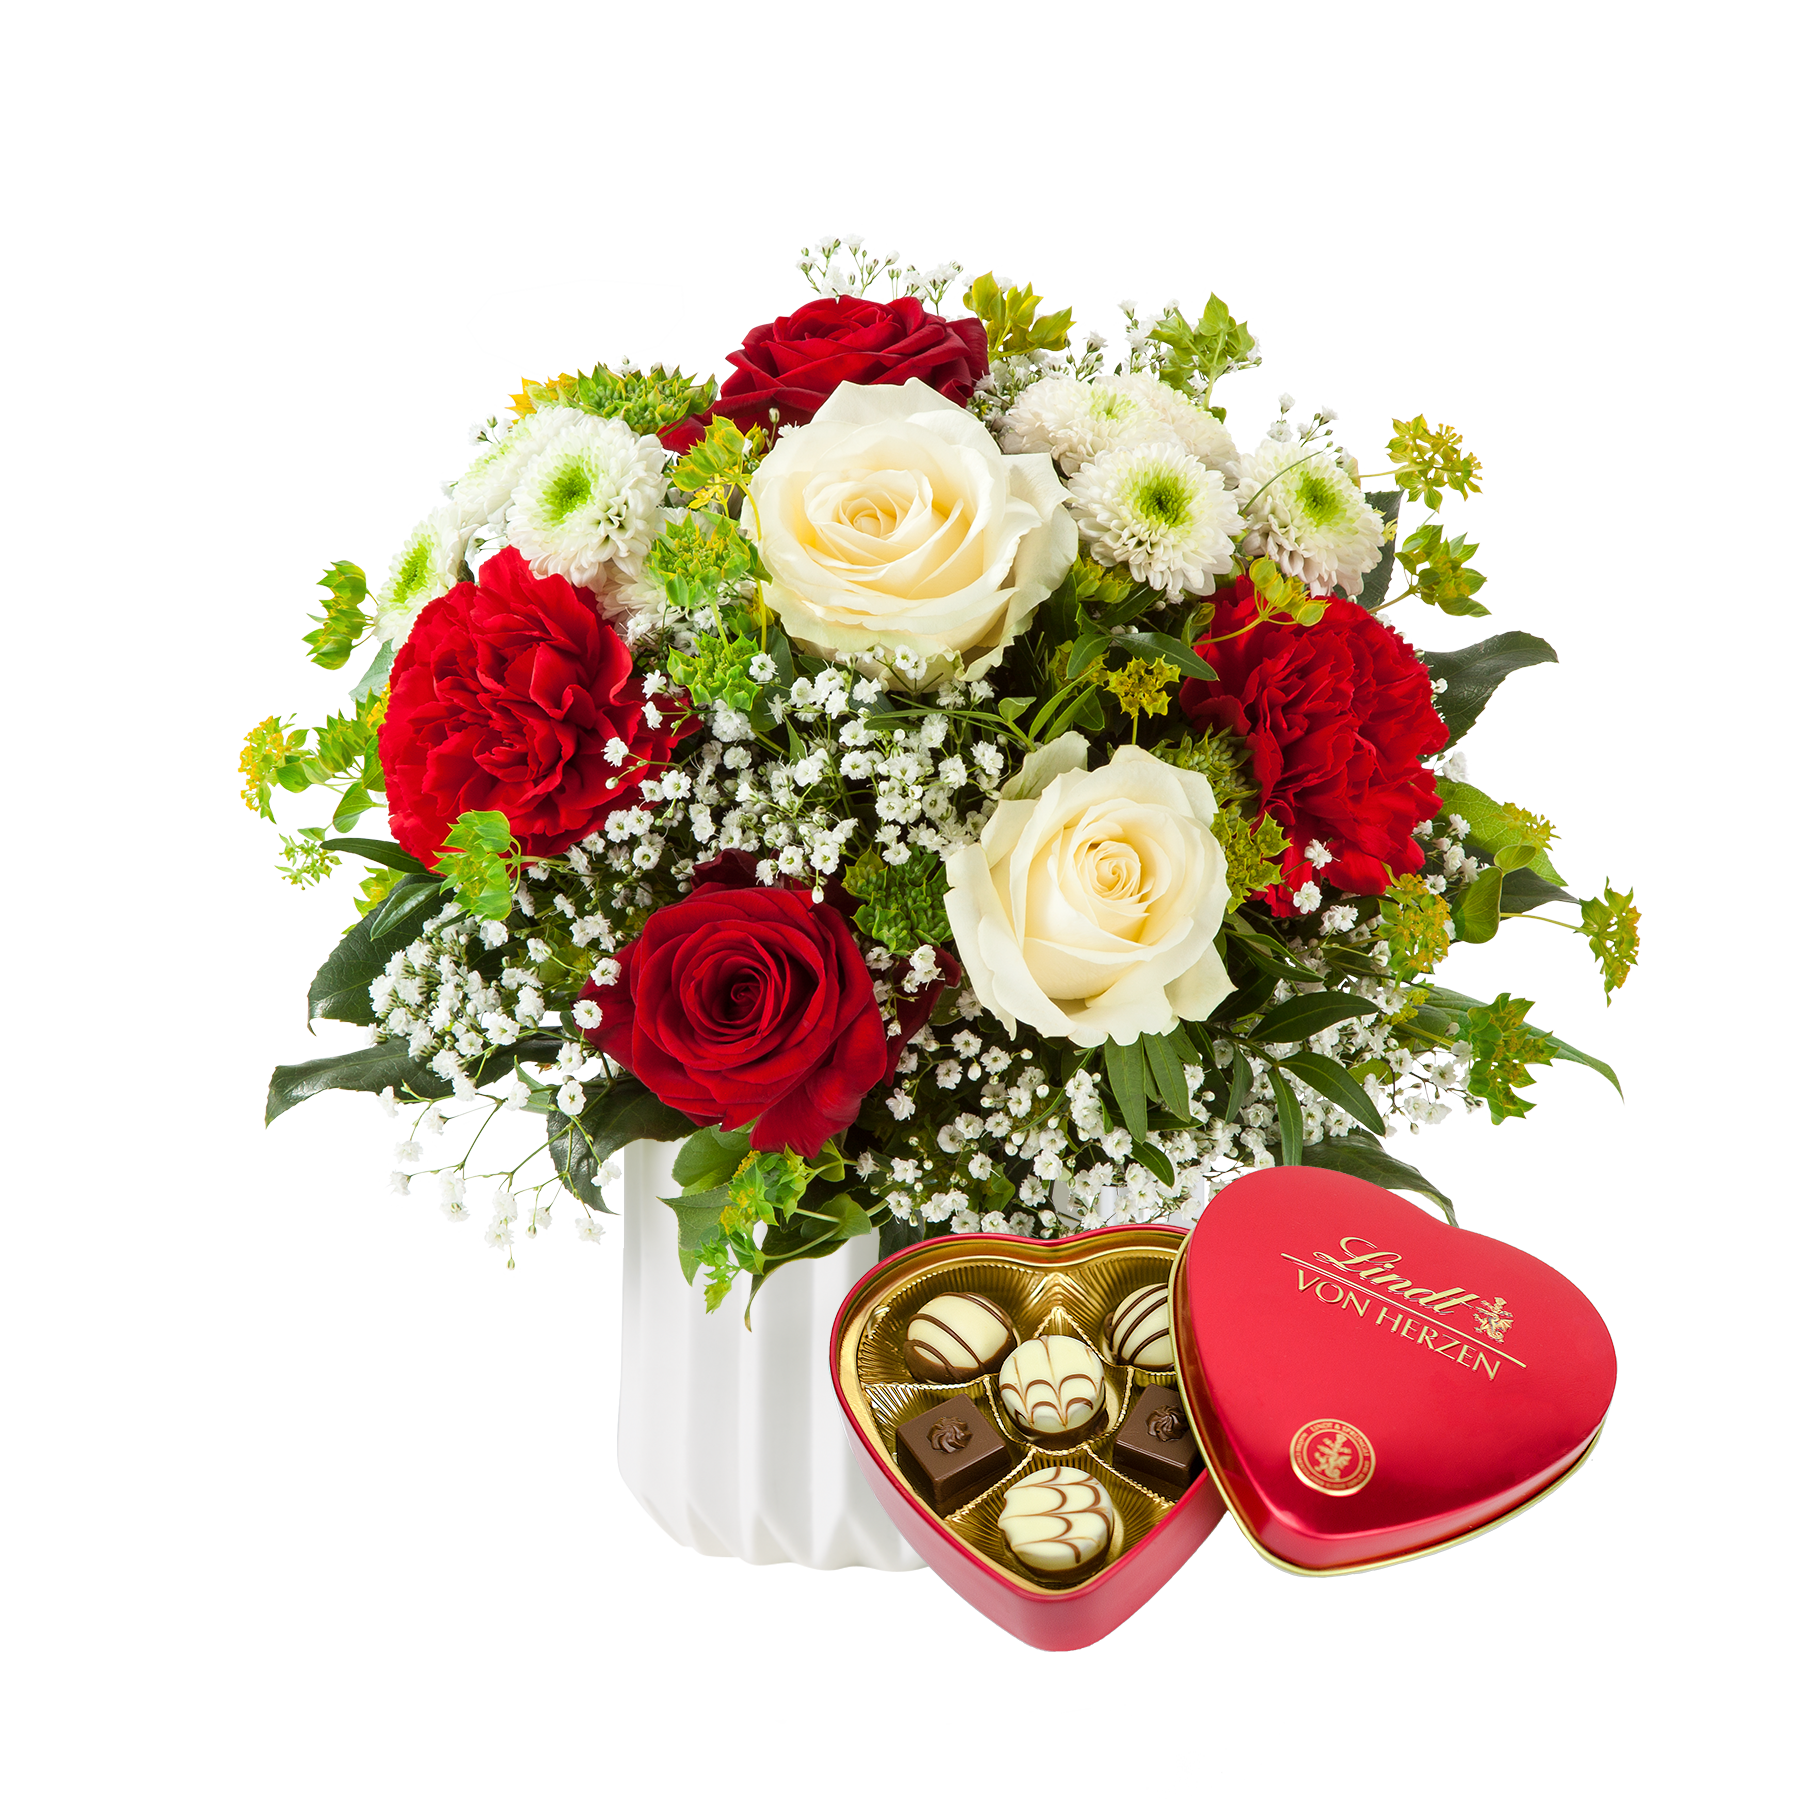 #Blumenstrauß Only for You mit Lindt Herz#